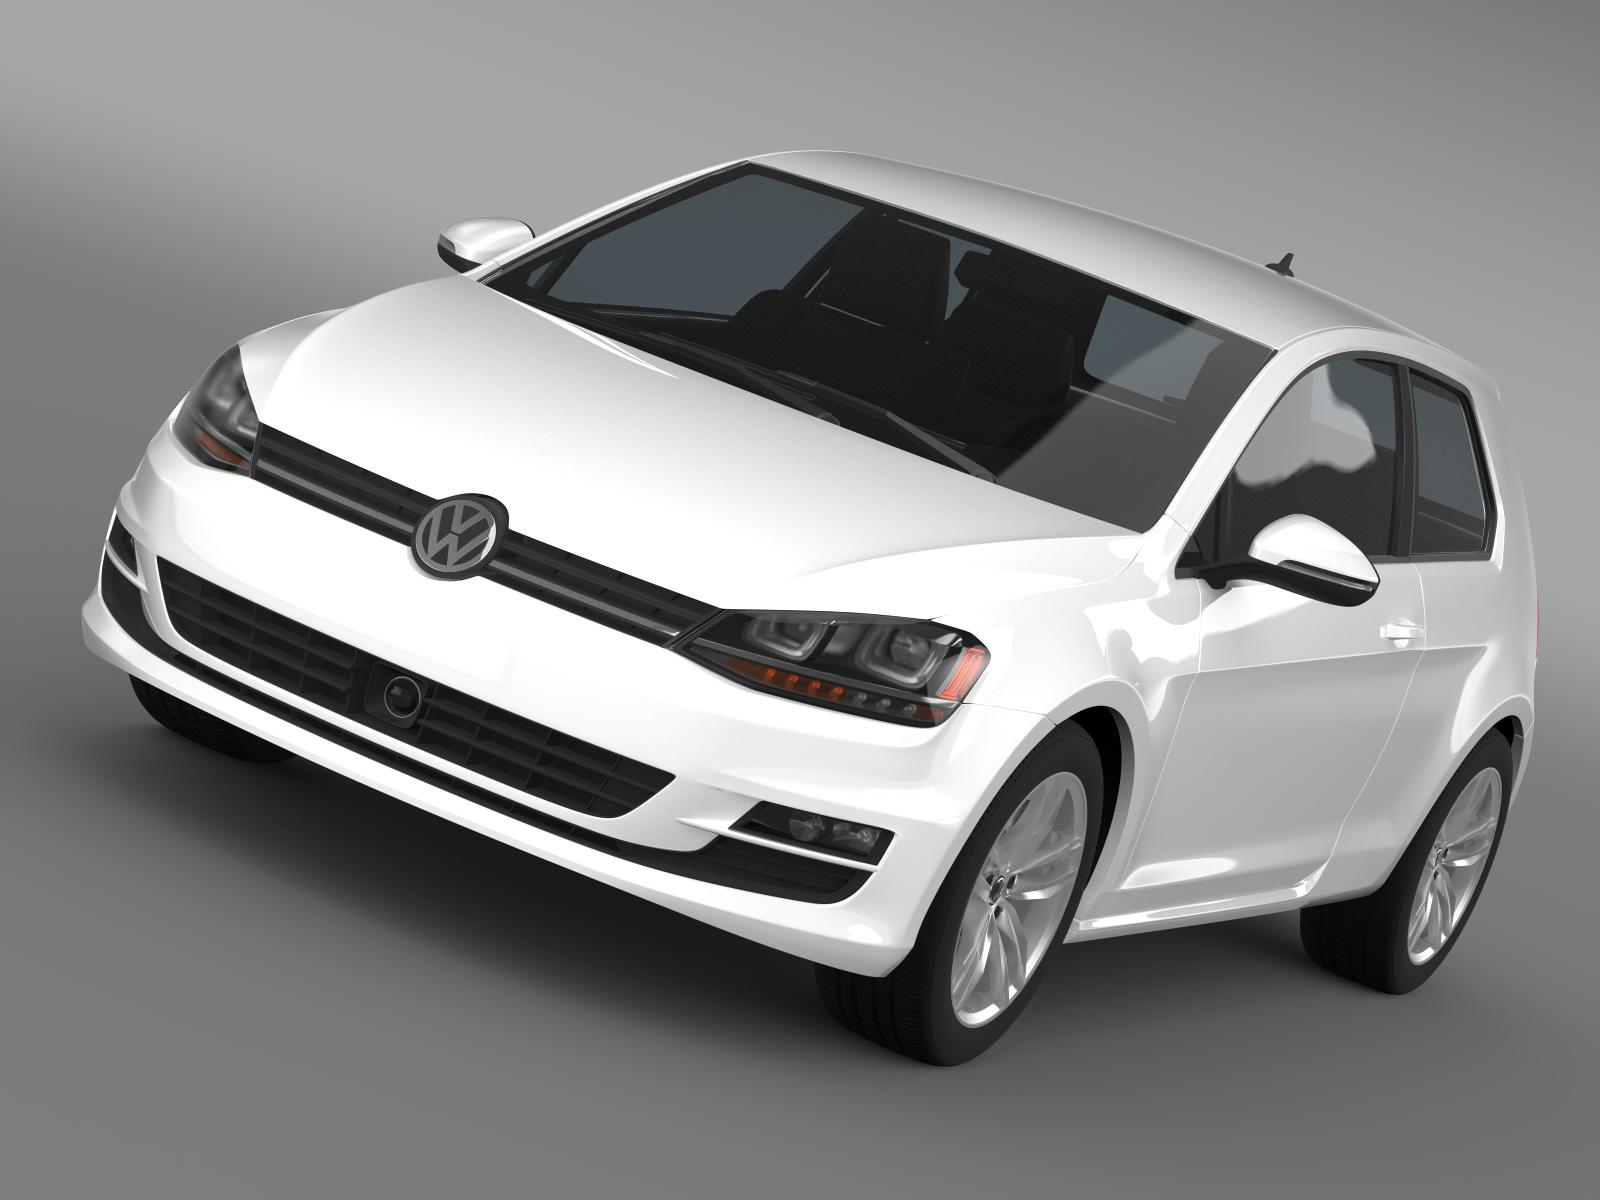 vw golf tsi bluemotion 3door 2015 3d загвар 3ds max fbx c4d 207757